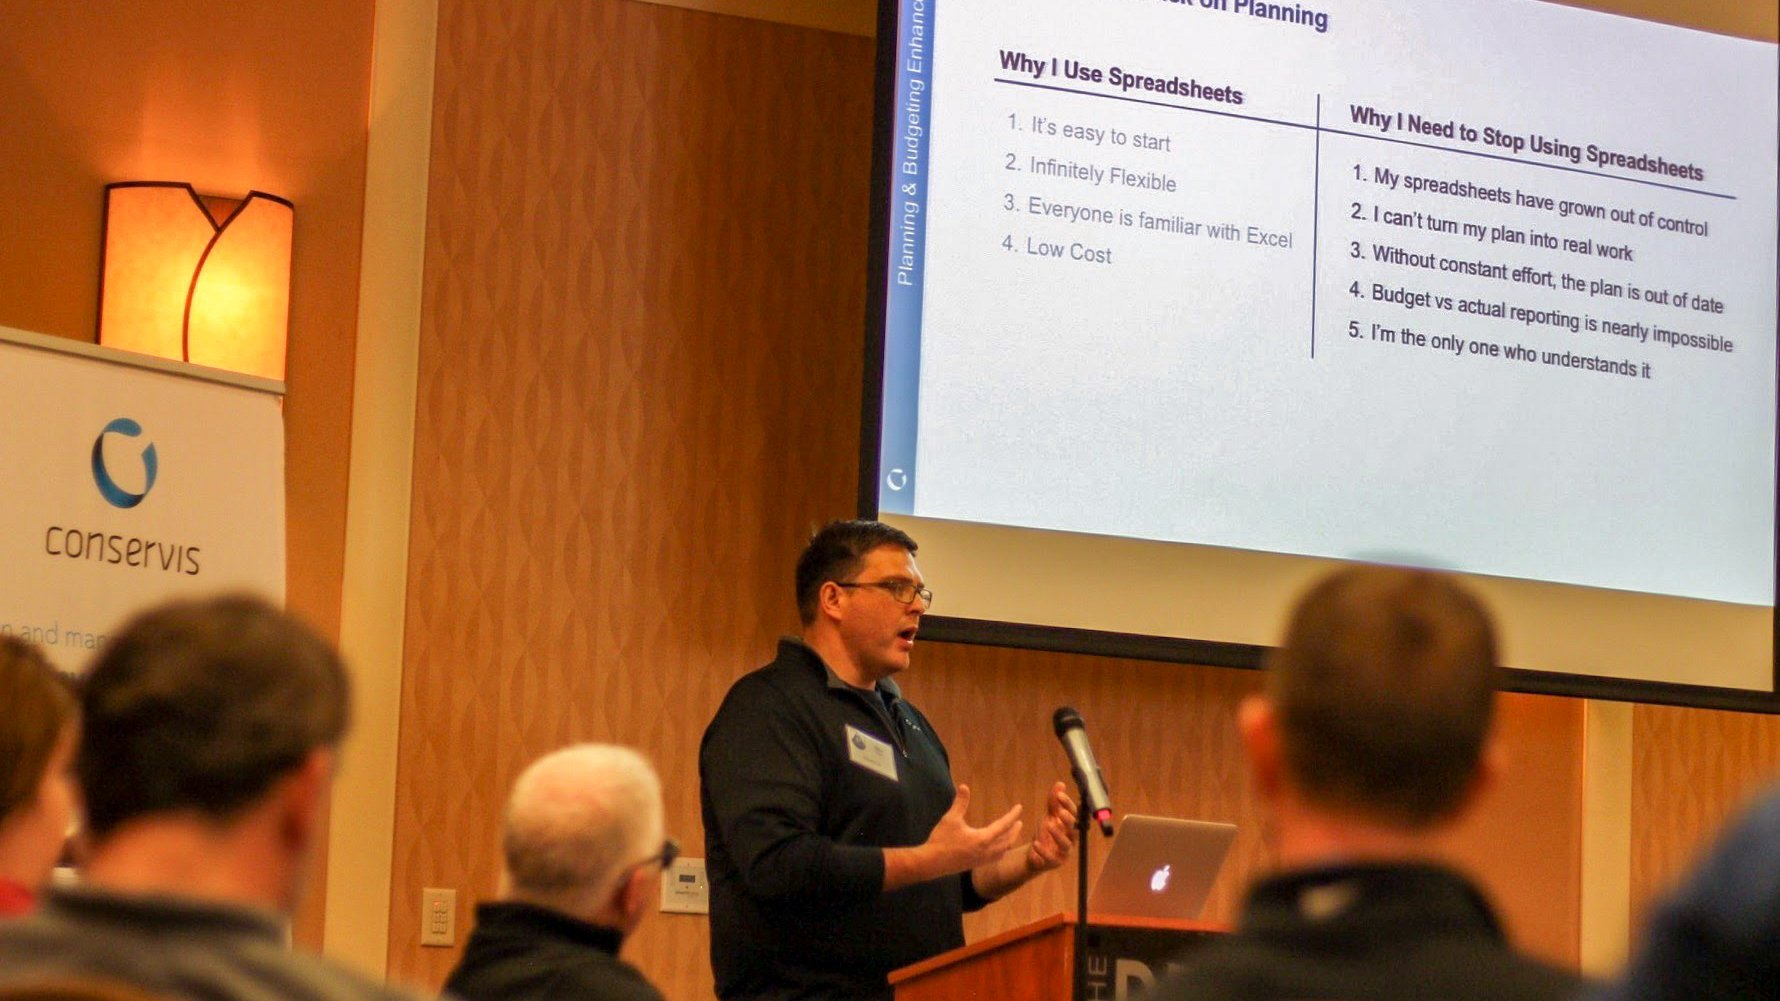 Stu Clark presenting at a Conservis customer summit